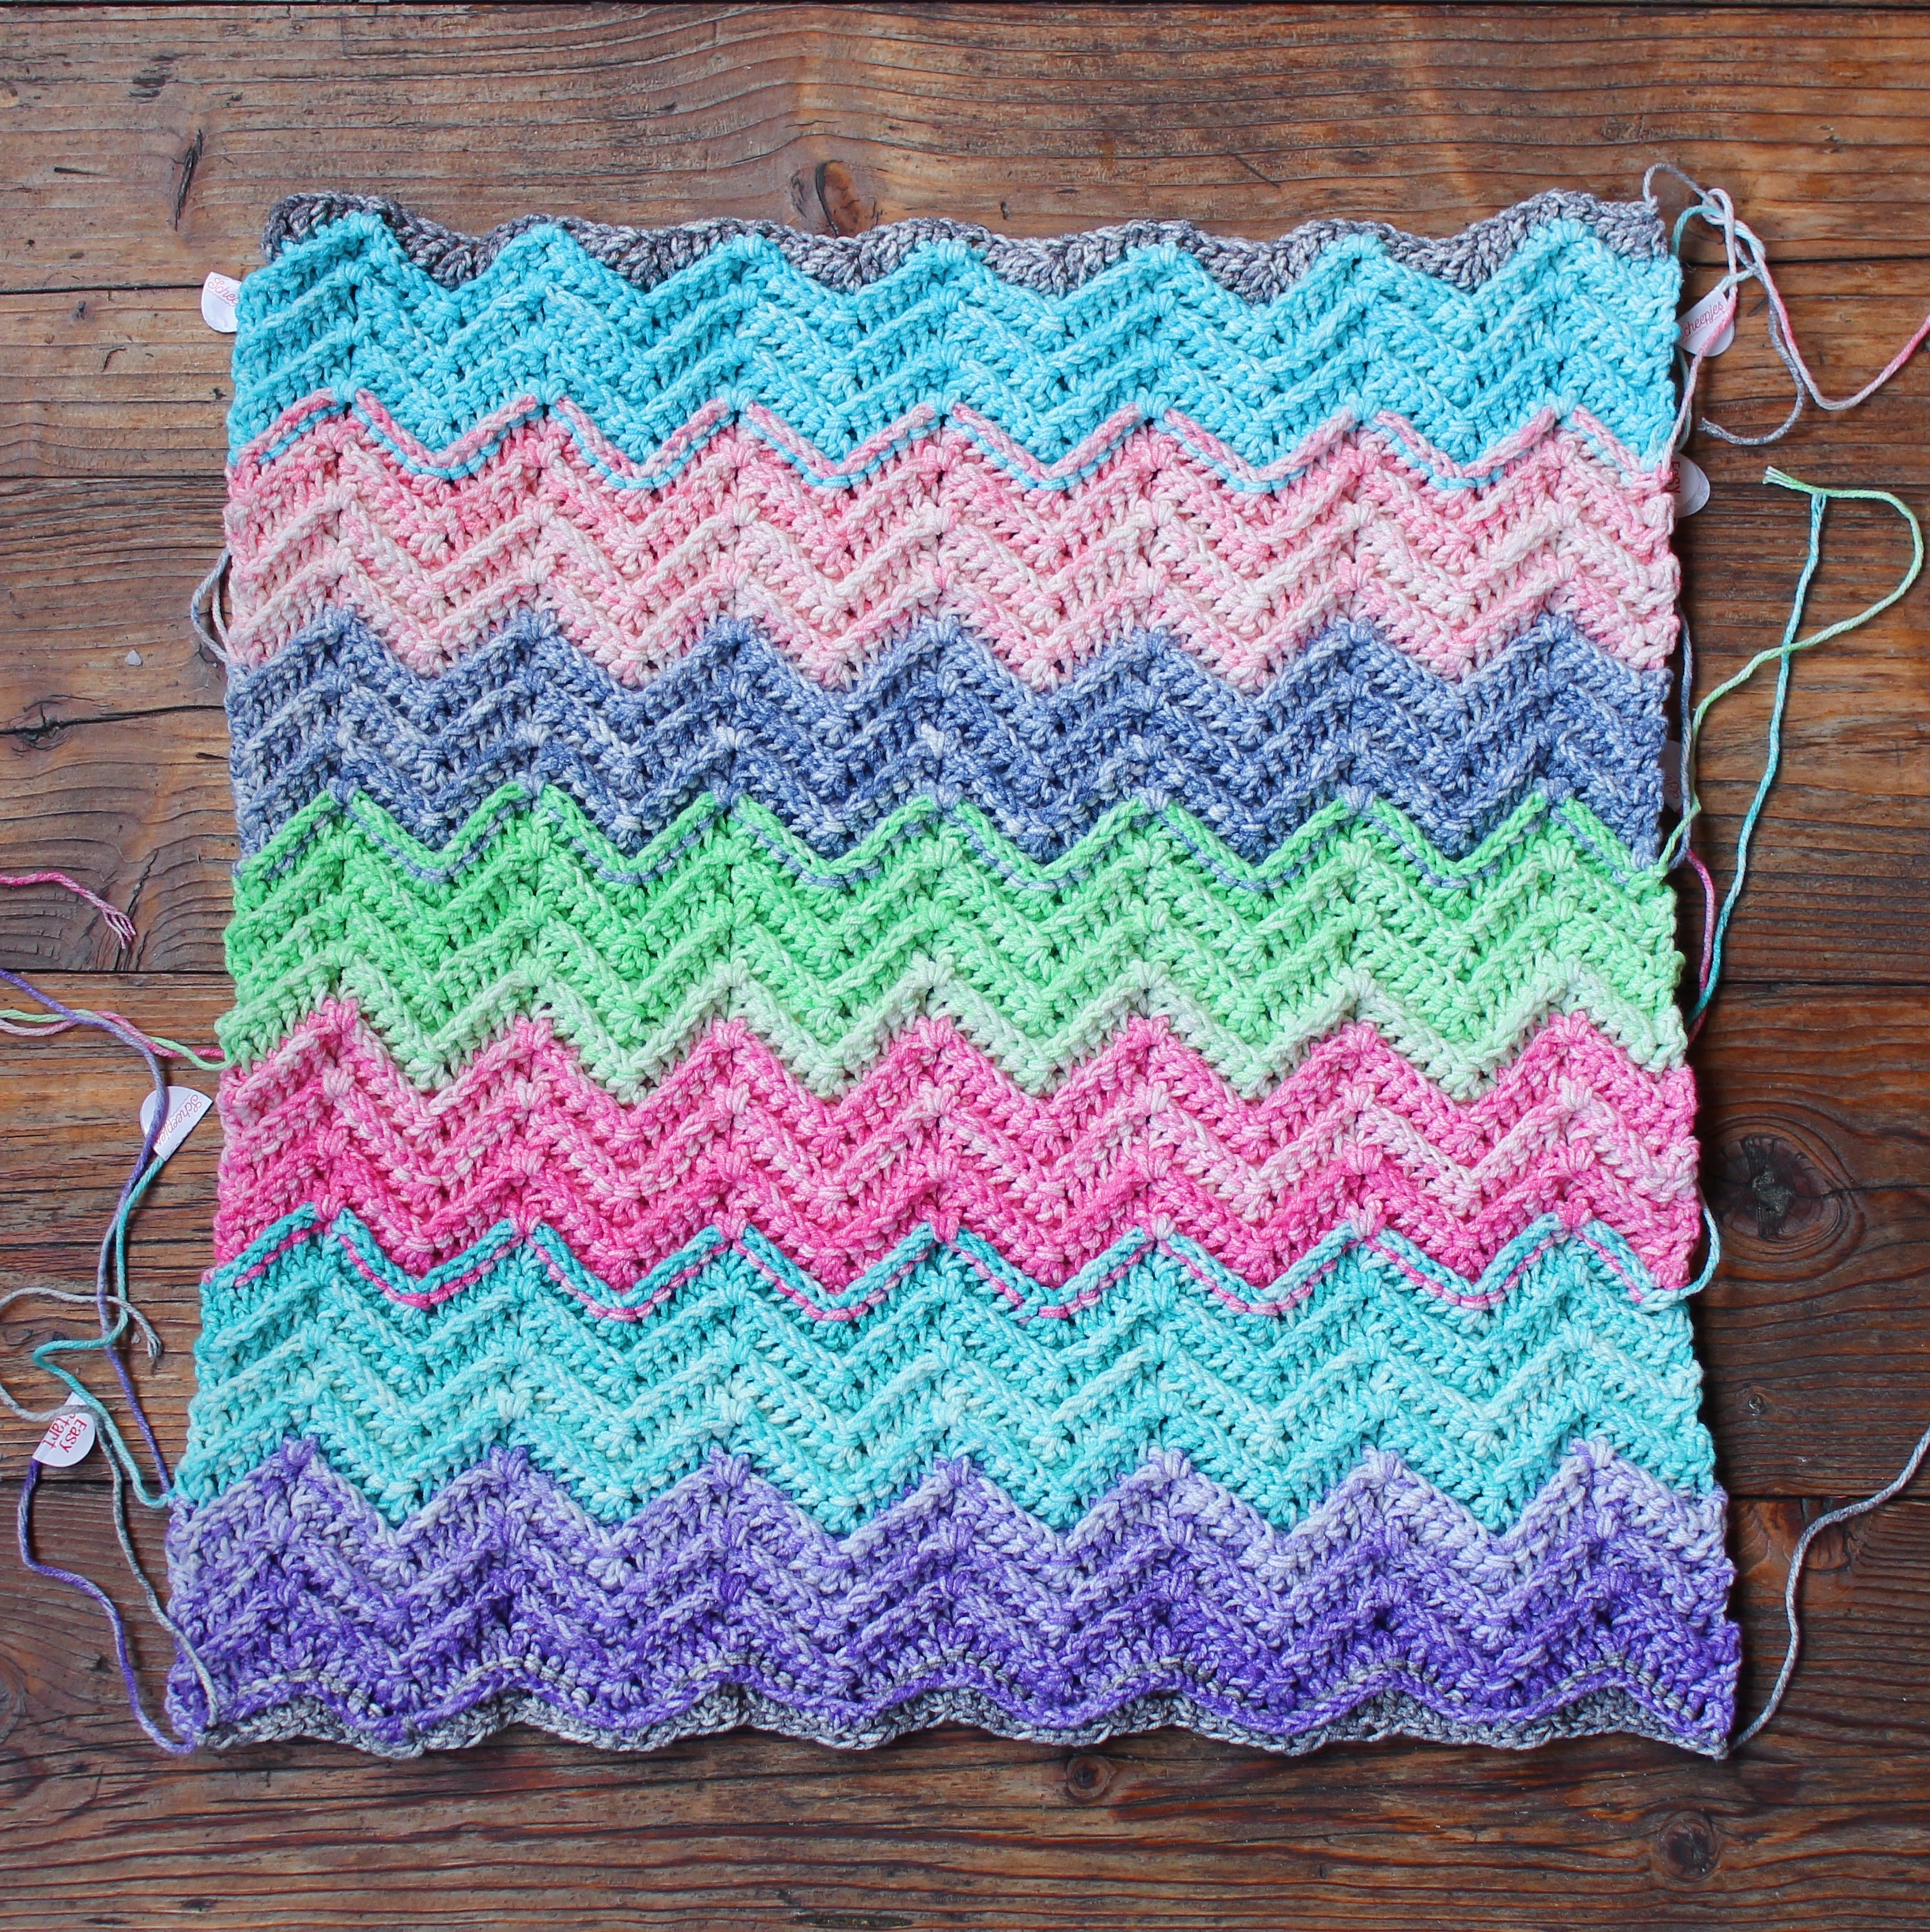 Textured Chevron crochet pattern in Scheepjes Aquarel